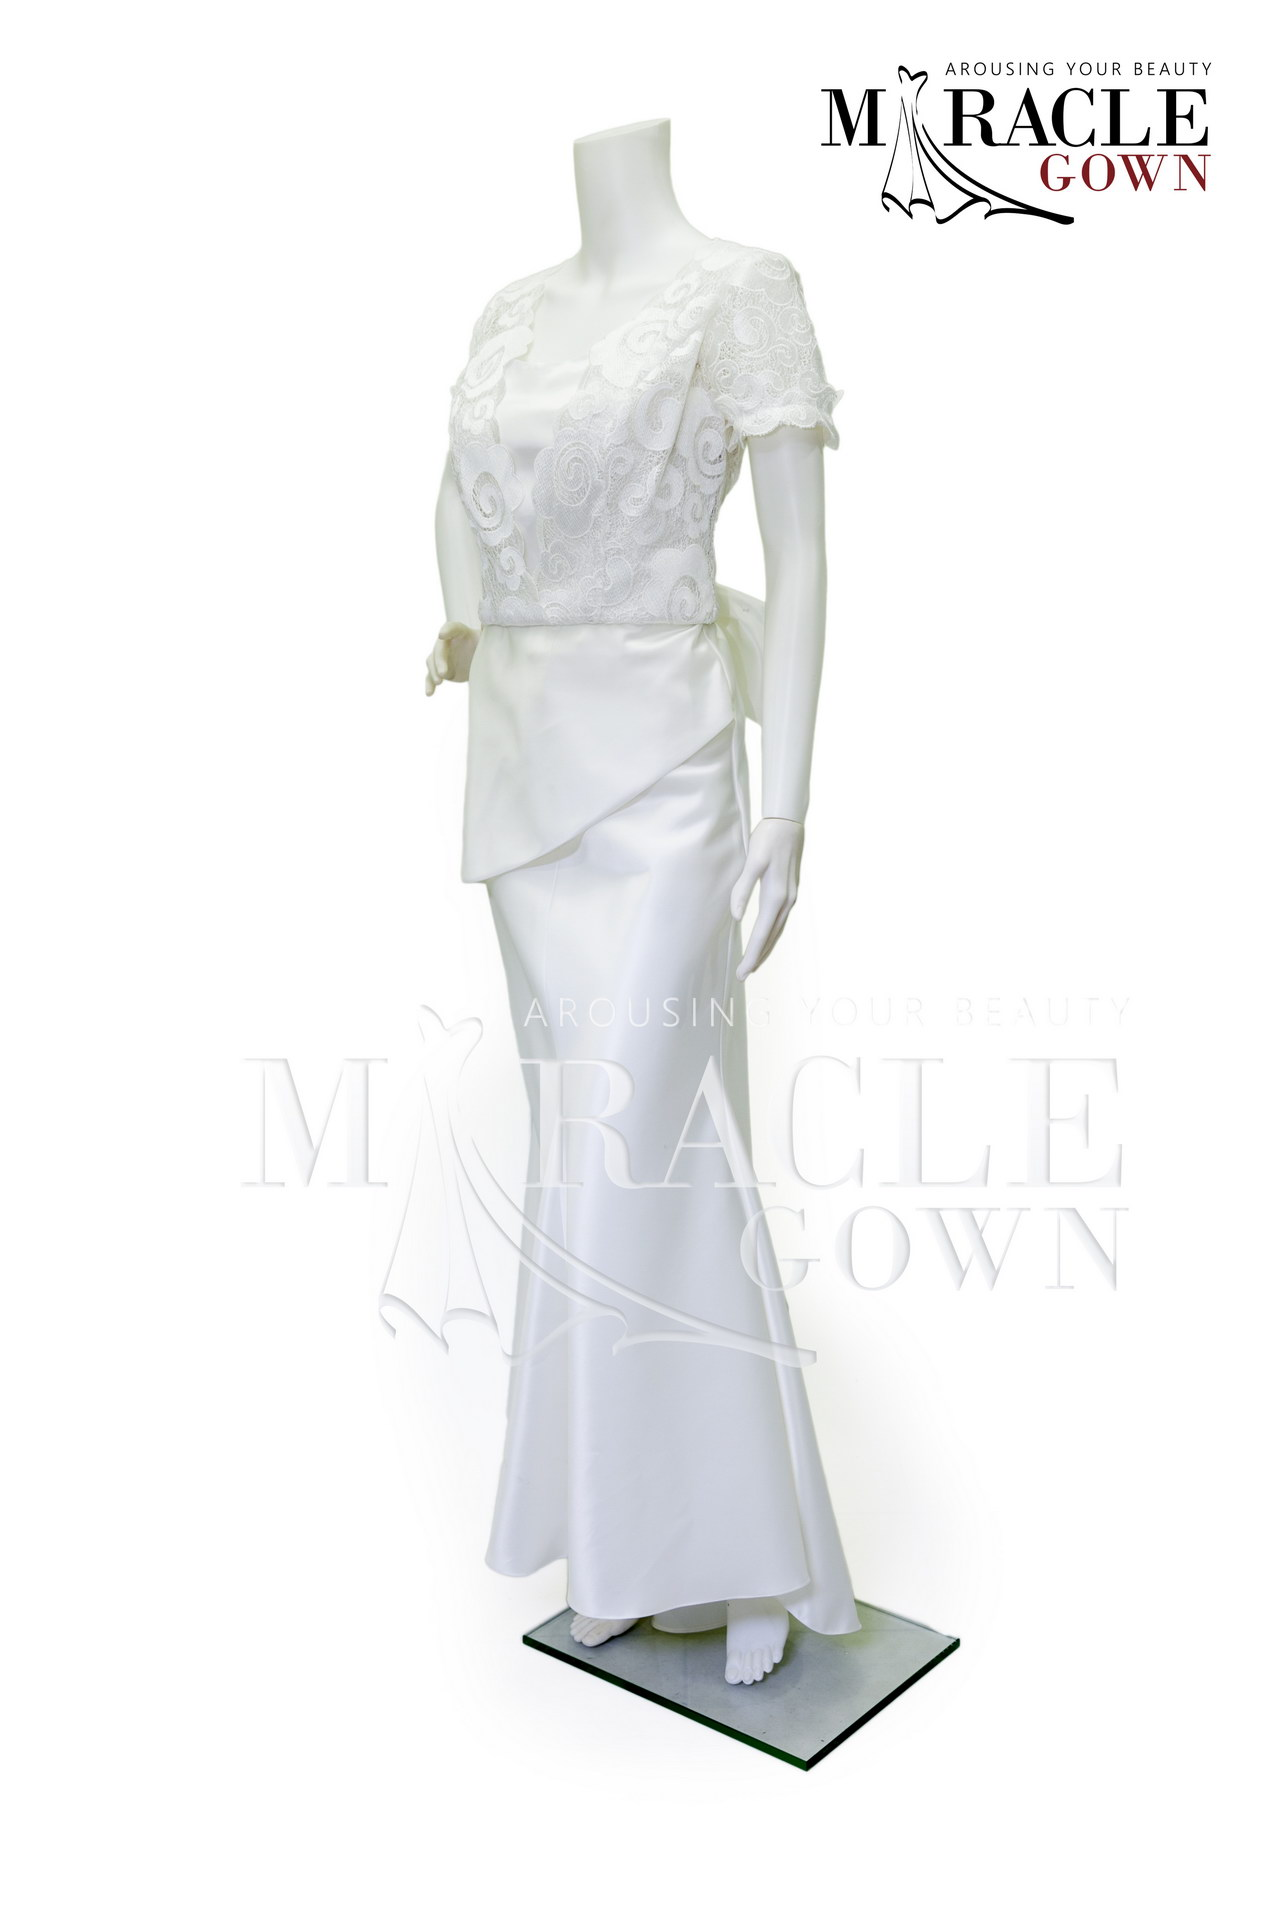 Sewa Gaun Surabaya - Miracle Gown - White asymetric on flared evening gown